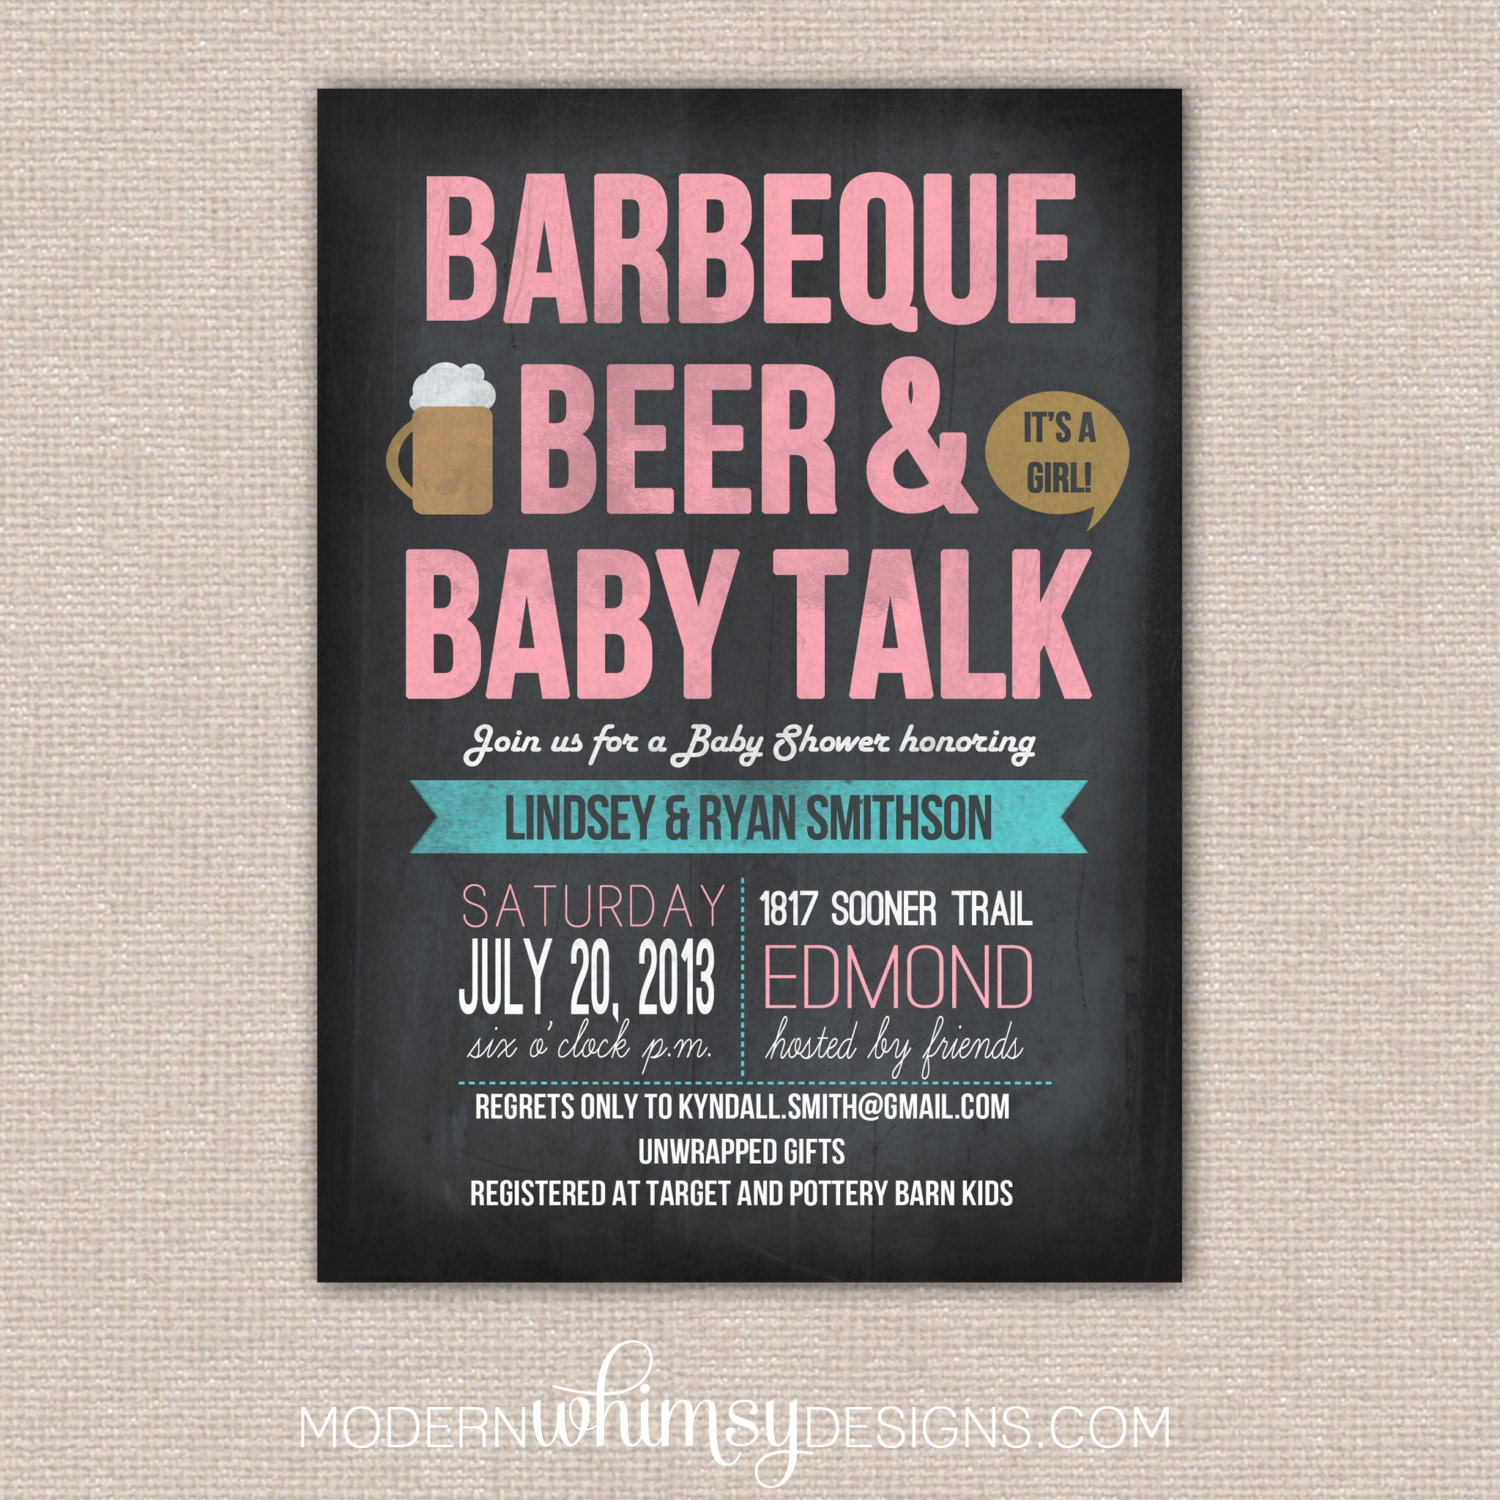 bbq baby shower bbq beer and baby talk theme by modernwhimsydesign